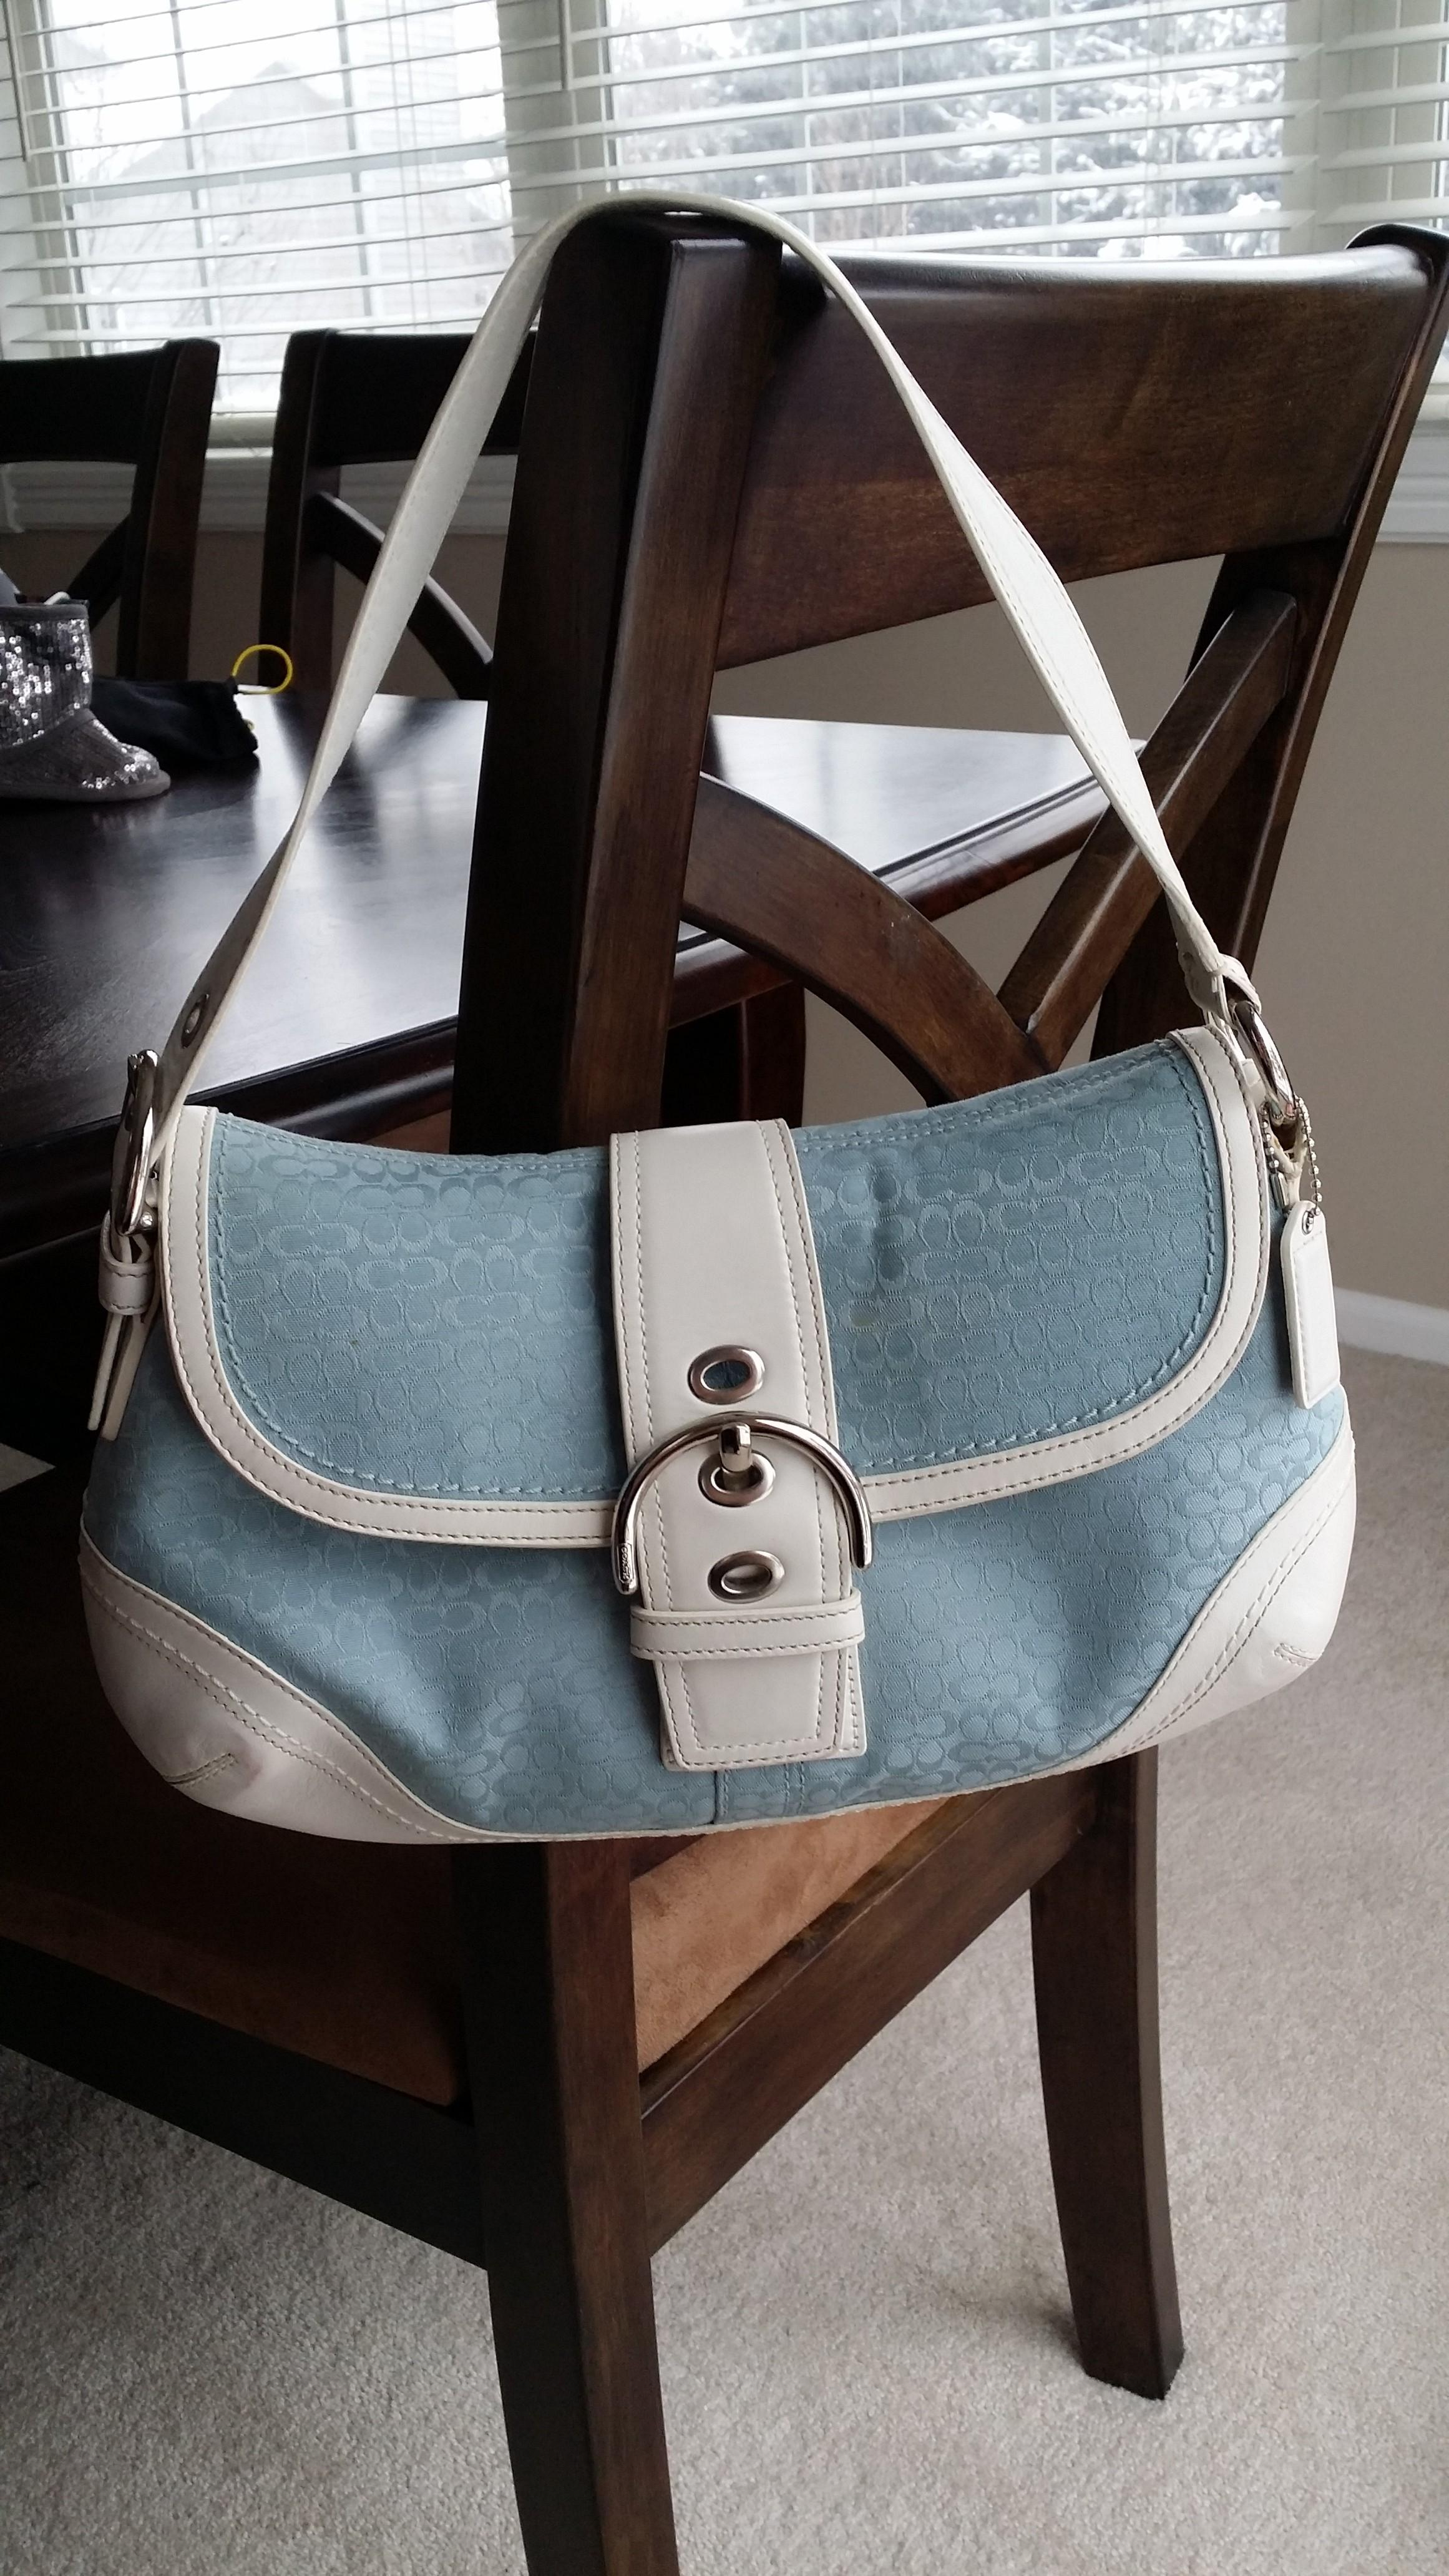 94d9bdf63fd4 ... netherlands coach hamptons small tote coach hamptons buckle shoulder bag.  123456789101112 563cc 8fa22